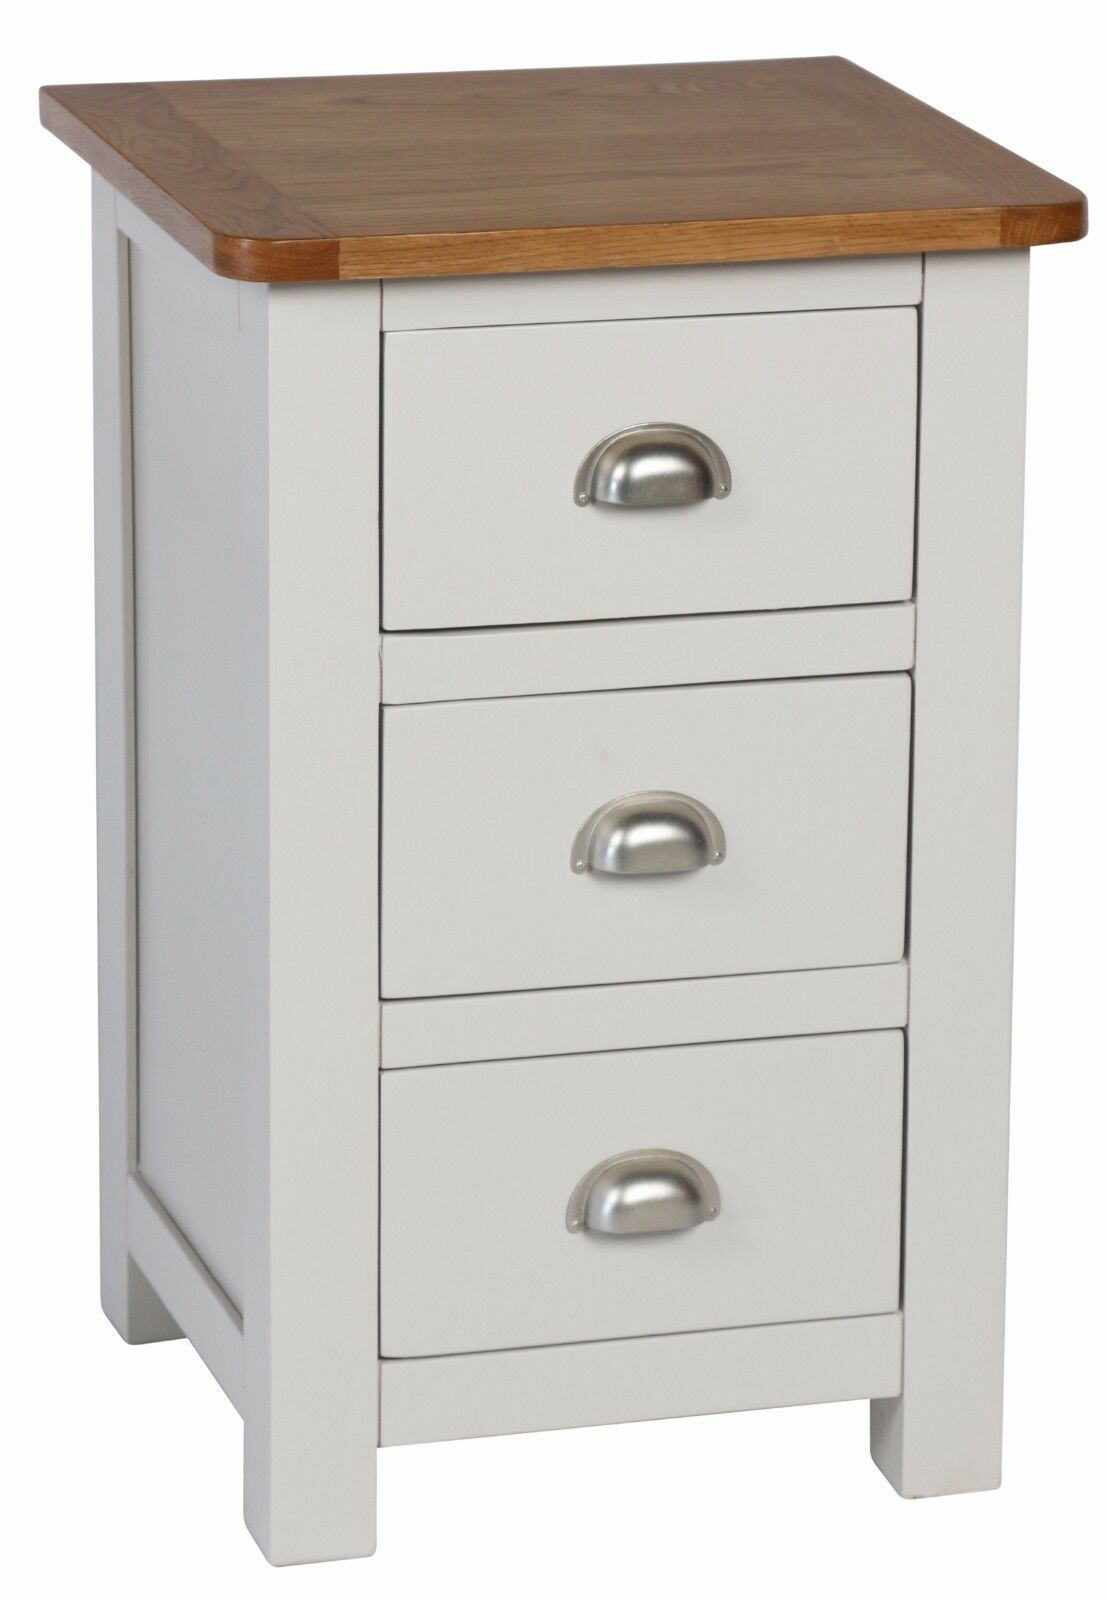 Alston 3 drawer bedside cabinet assembled solid acacia wood grey and oak tops